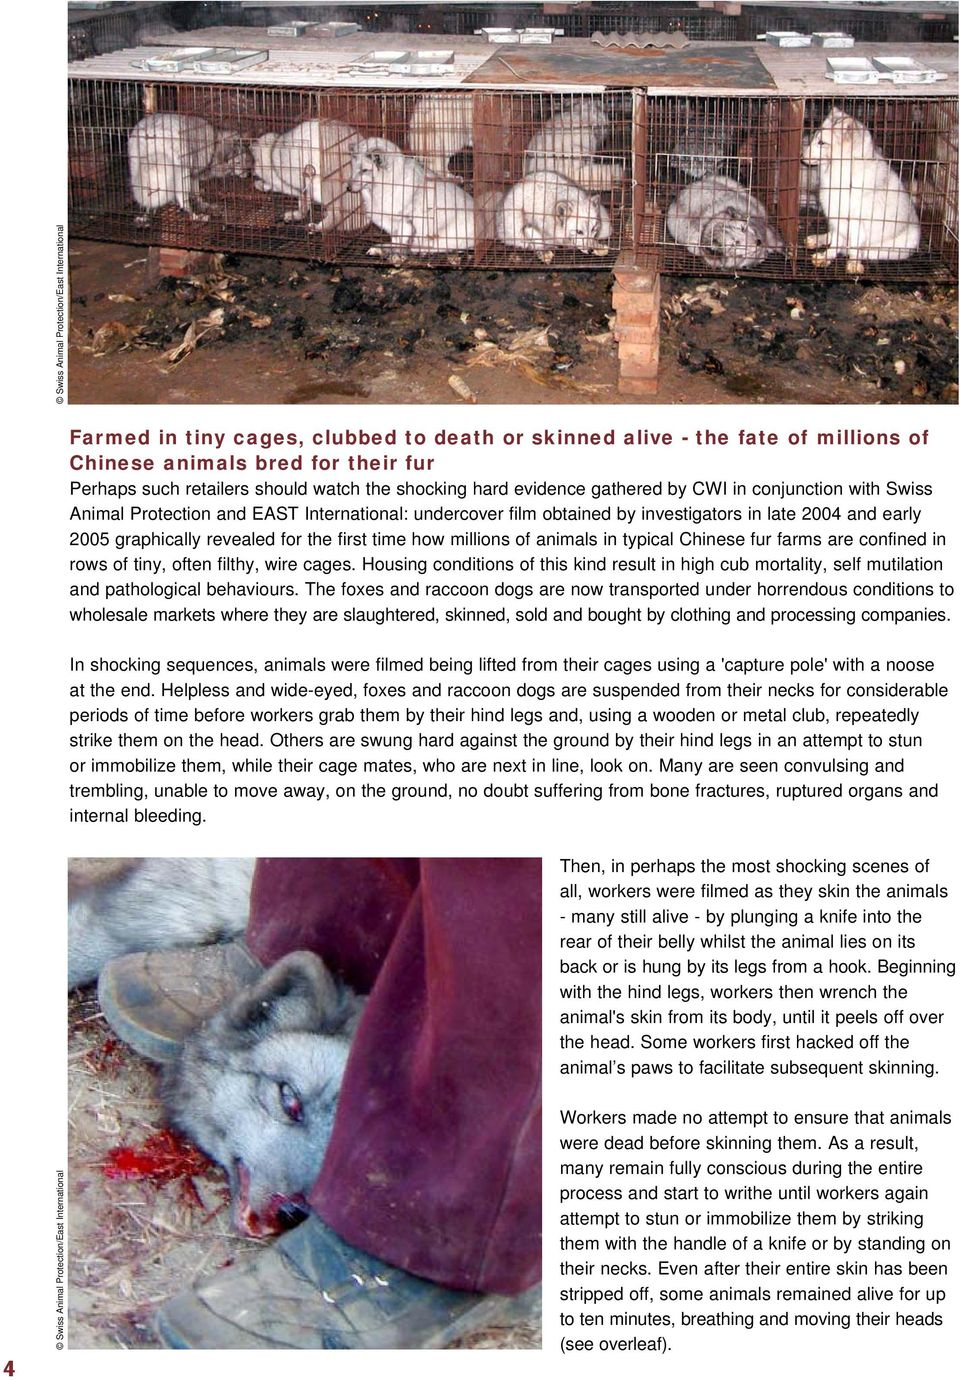 late 2004 and early 2005 graphically revealed for the first time how millions of animals in typical Chinese fur farms are confined in rows of tiny, often filthy, wire cages.